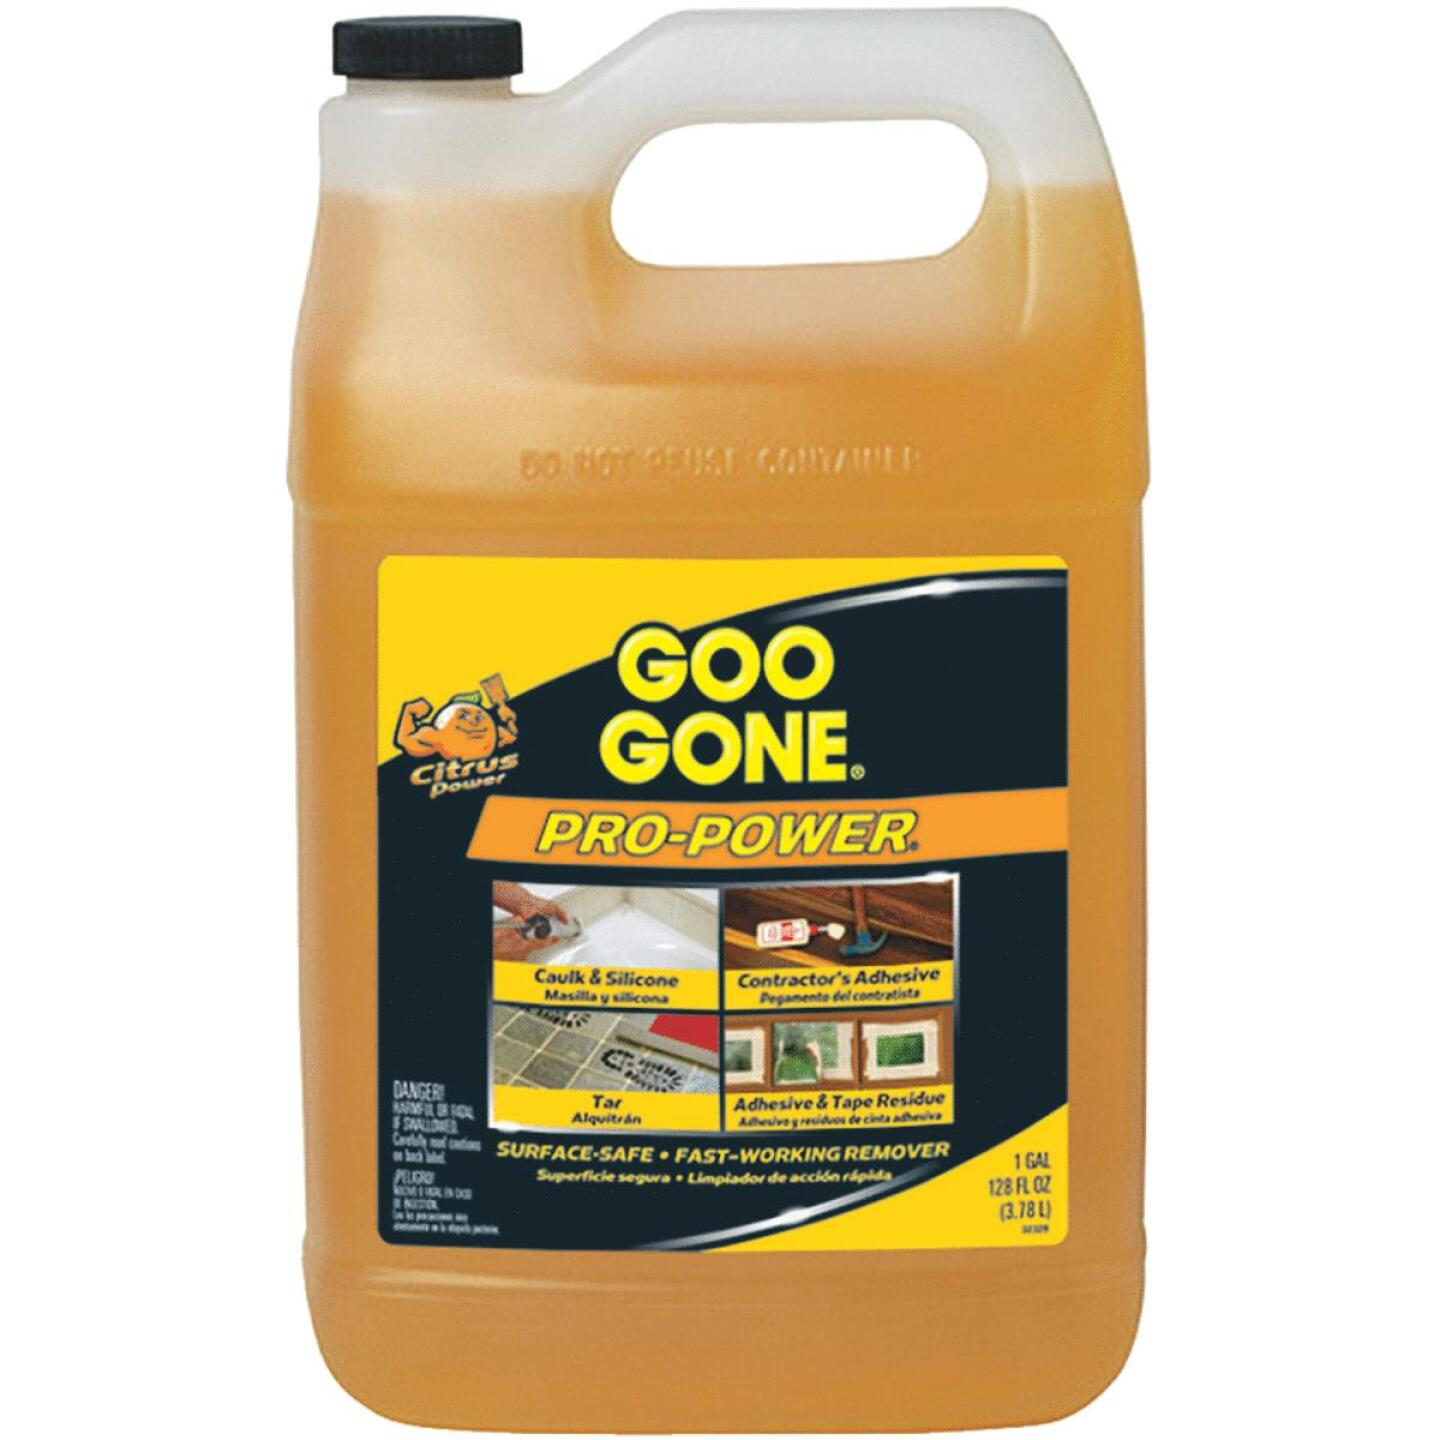 Goo Gone 1 Gal. Pro-Power Adhesive Remover Image 343